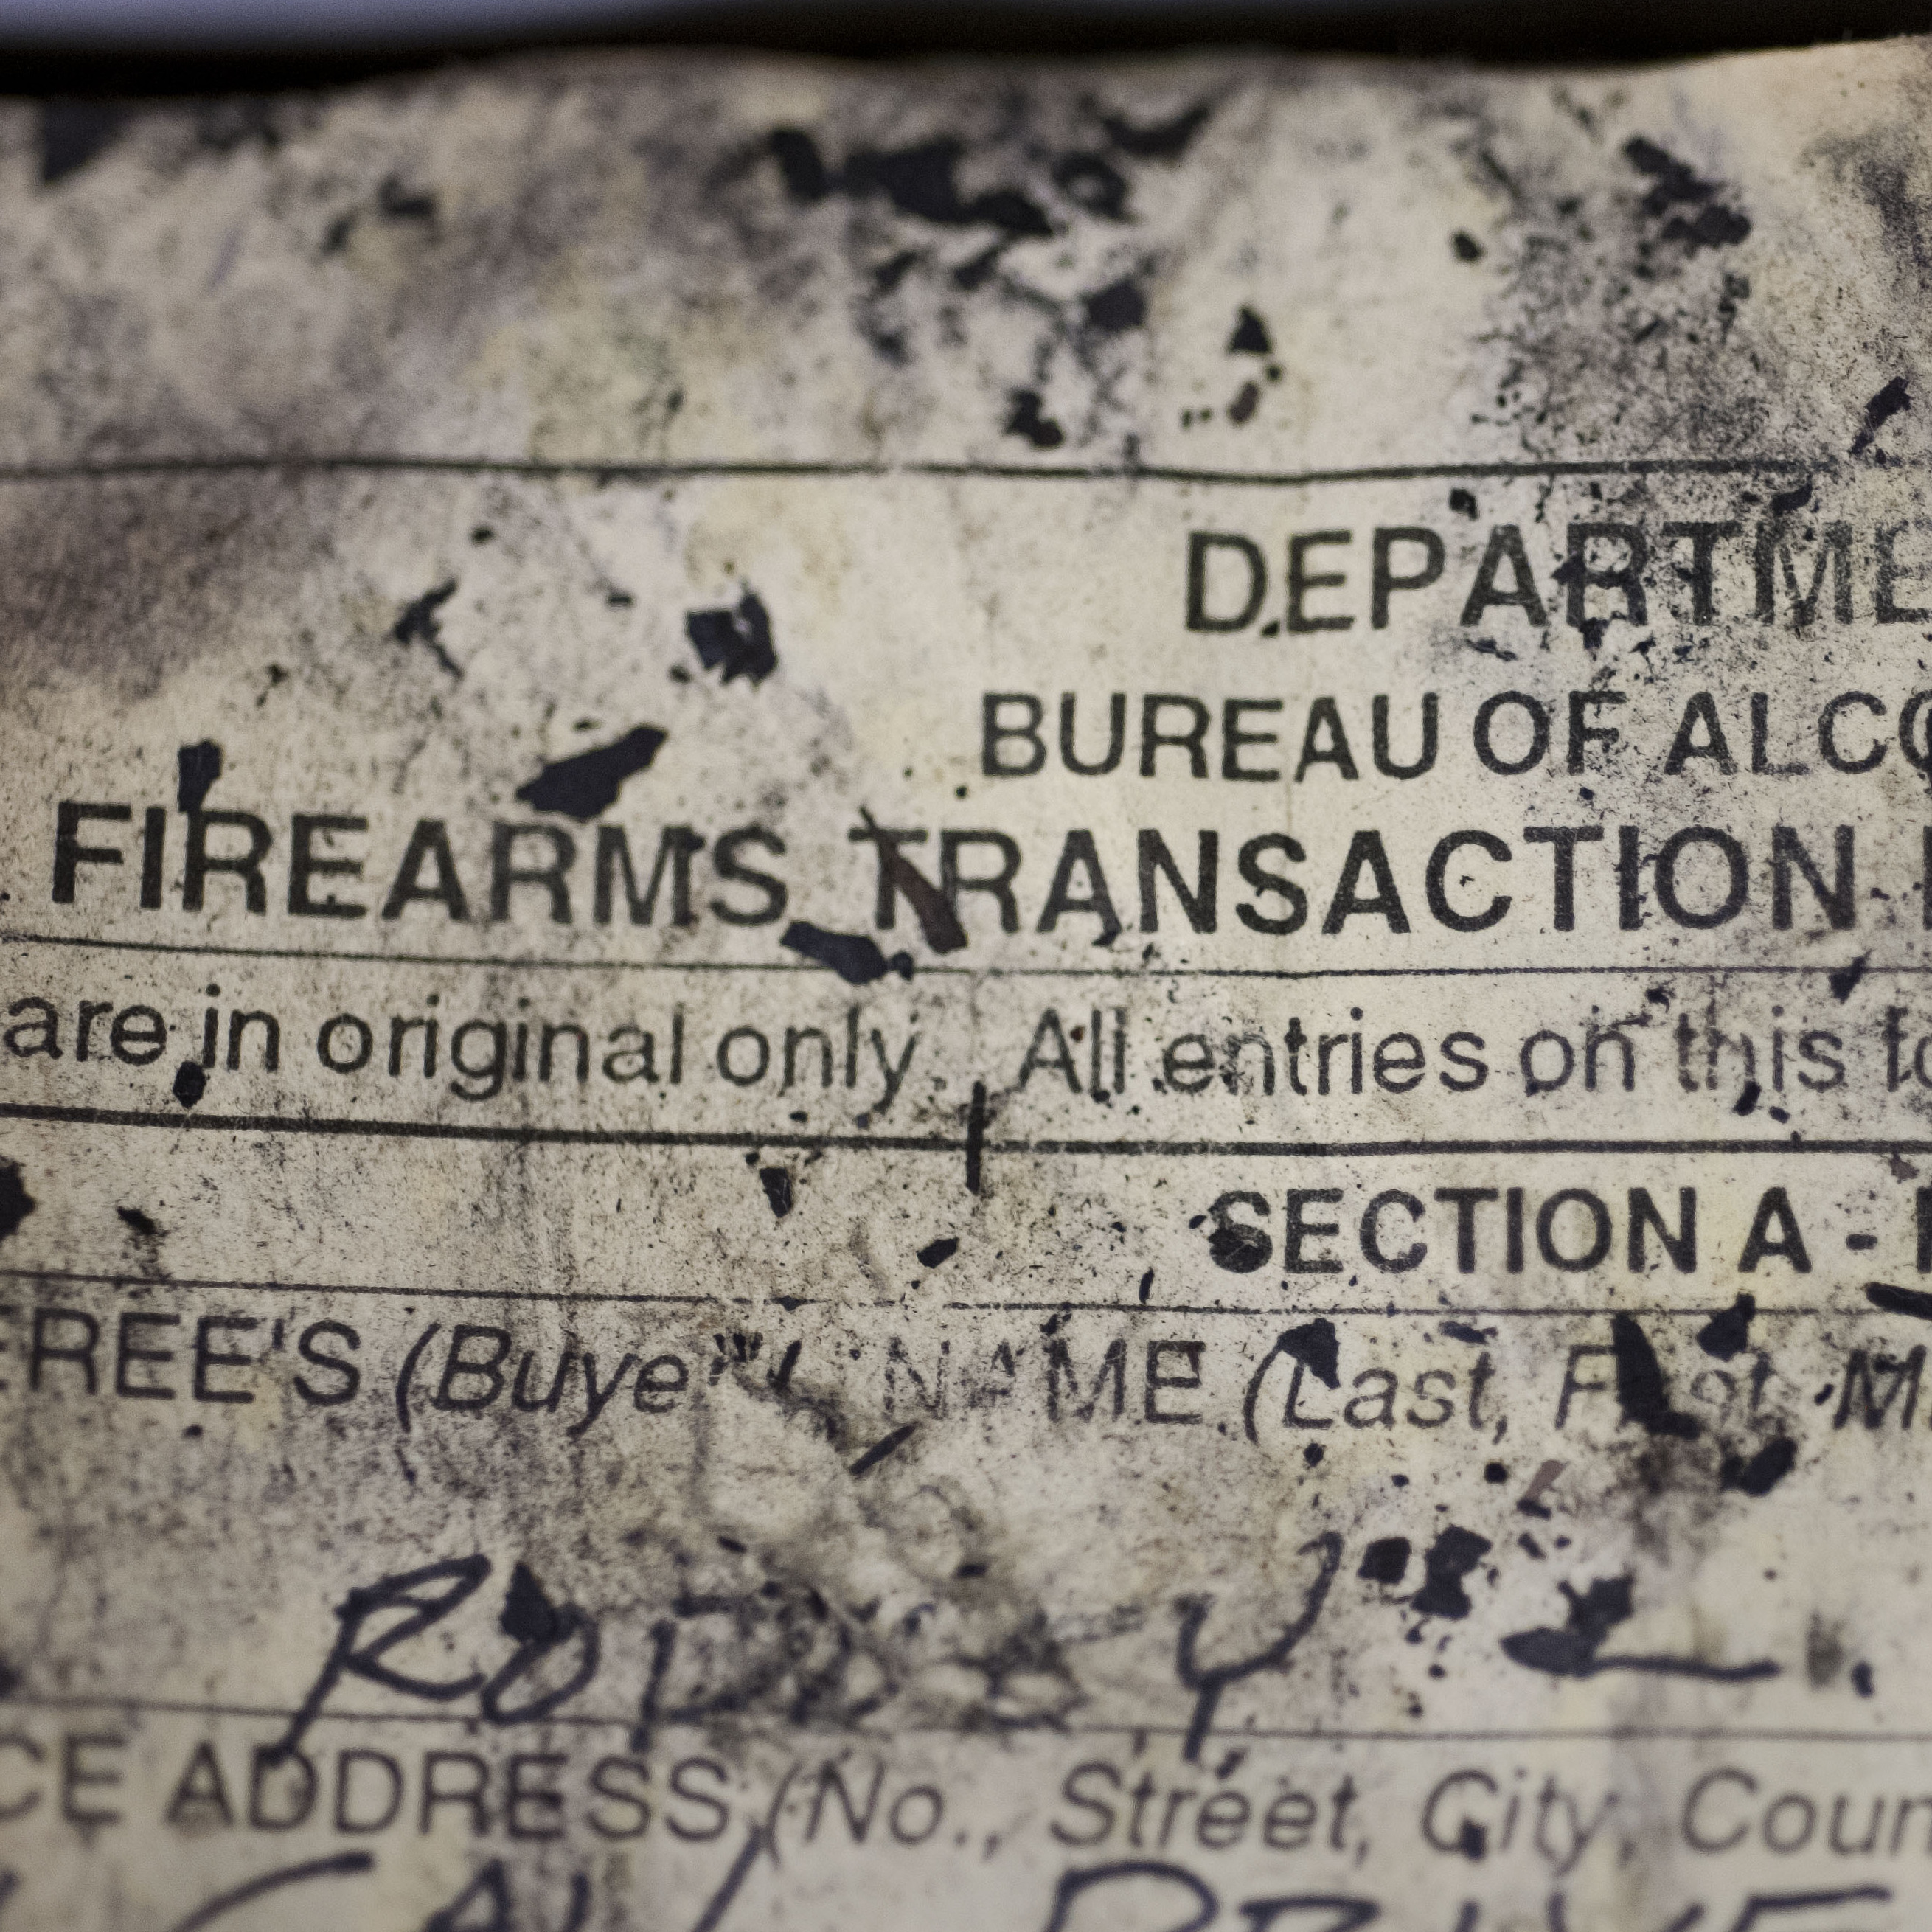 The Bureau of Alcohol, Tobacco, Firearms and Explosives (ATF) processes firearm transaction documents from firearms dealers no longer in business, no matter the condition of the documents, such as this fire and water damaged ledger at their National Trace Center in Martinsburg, W.Va.